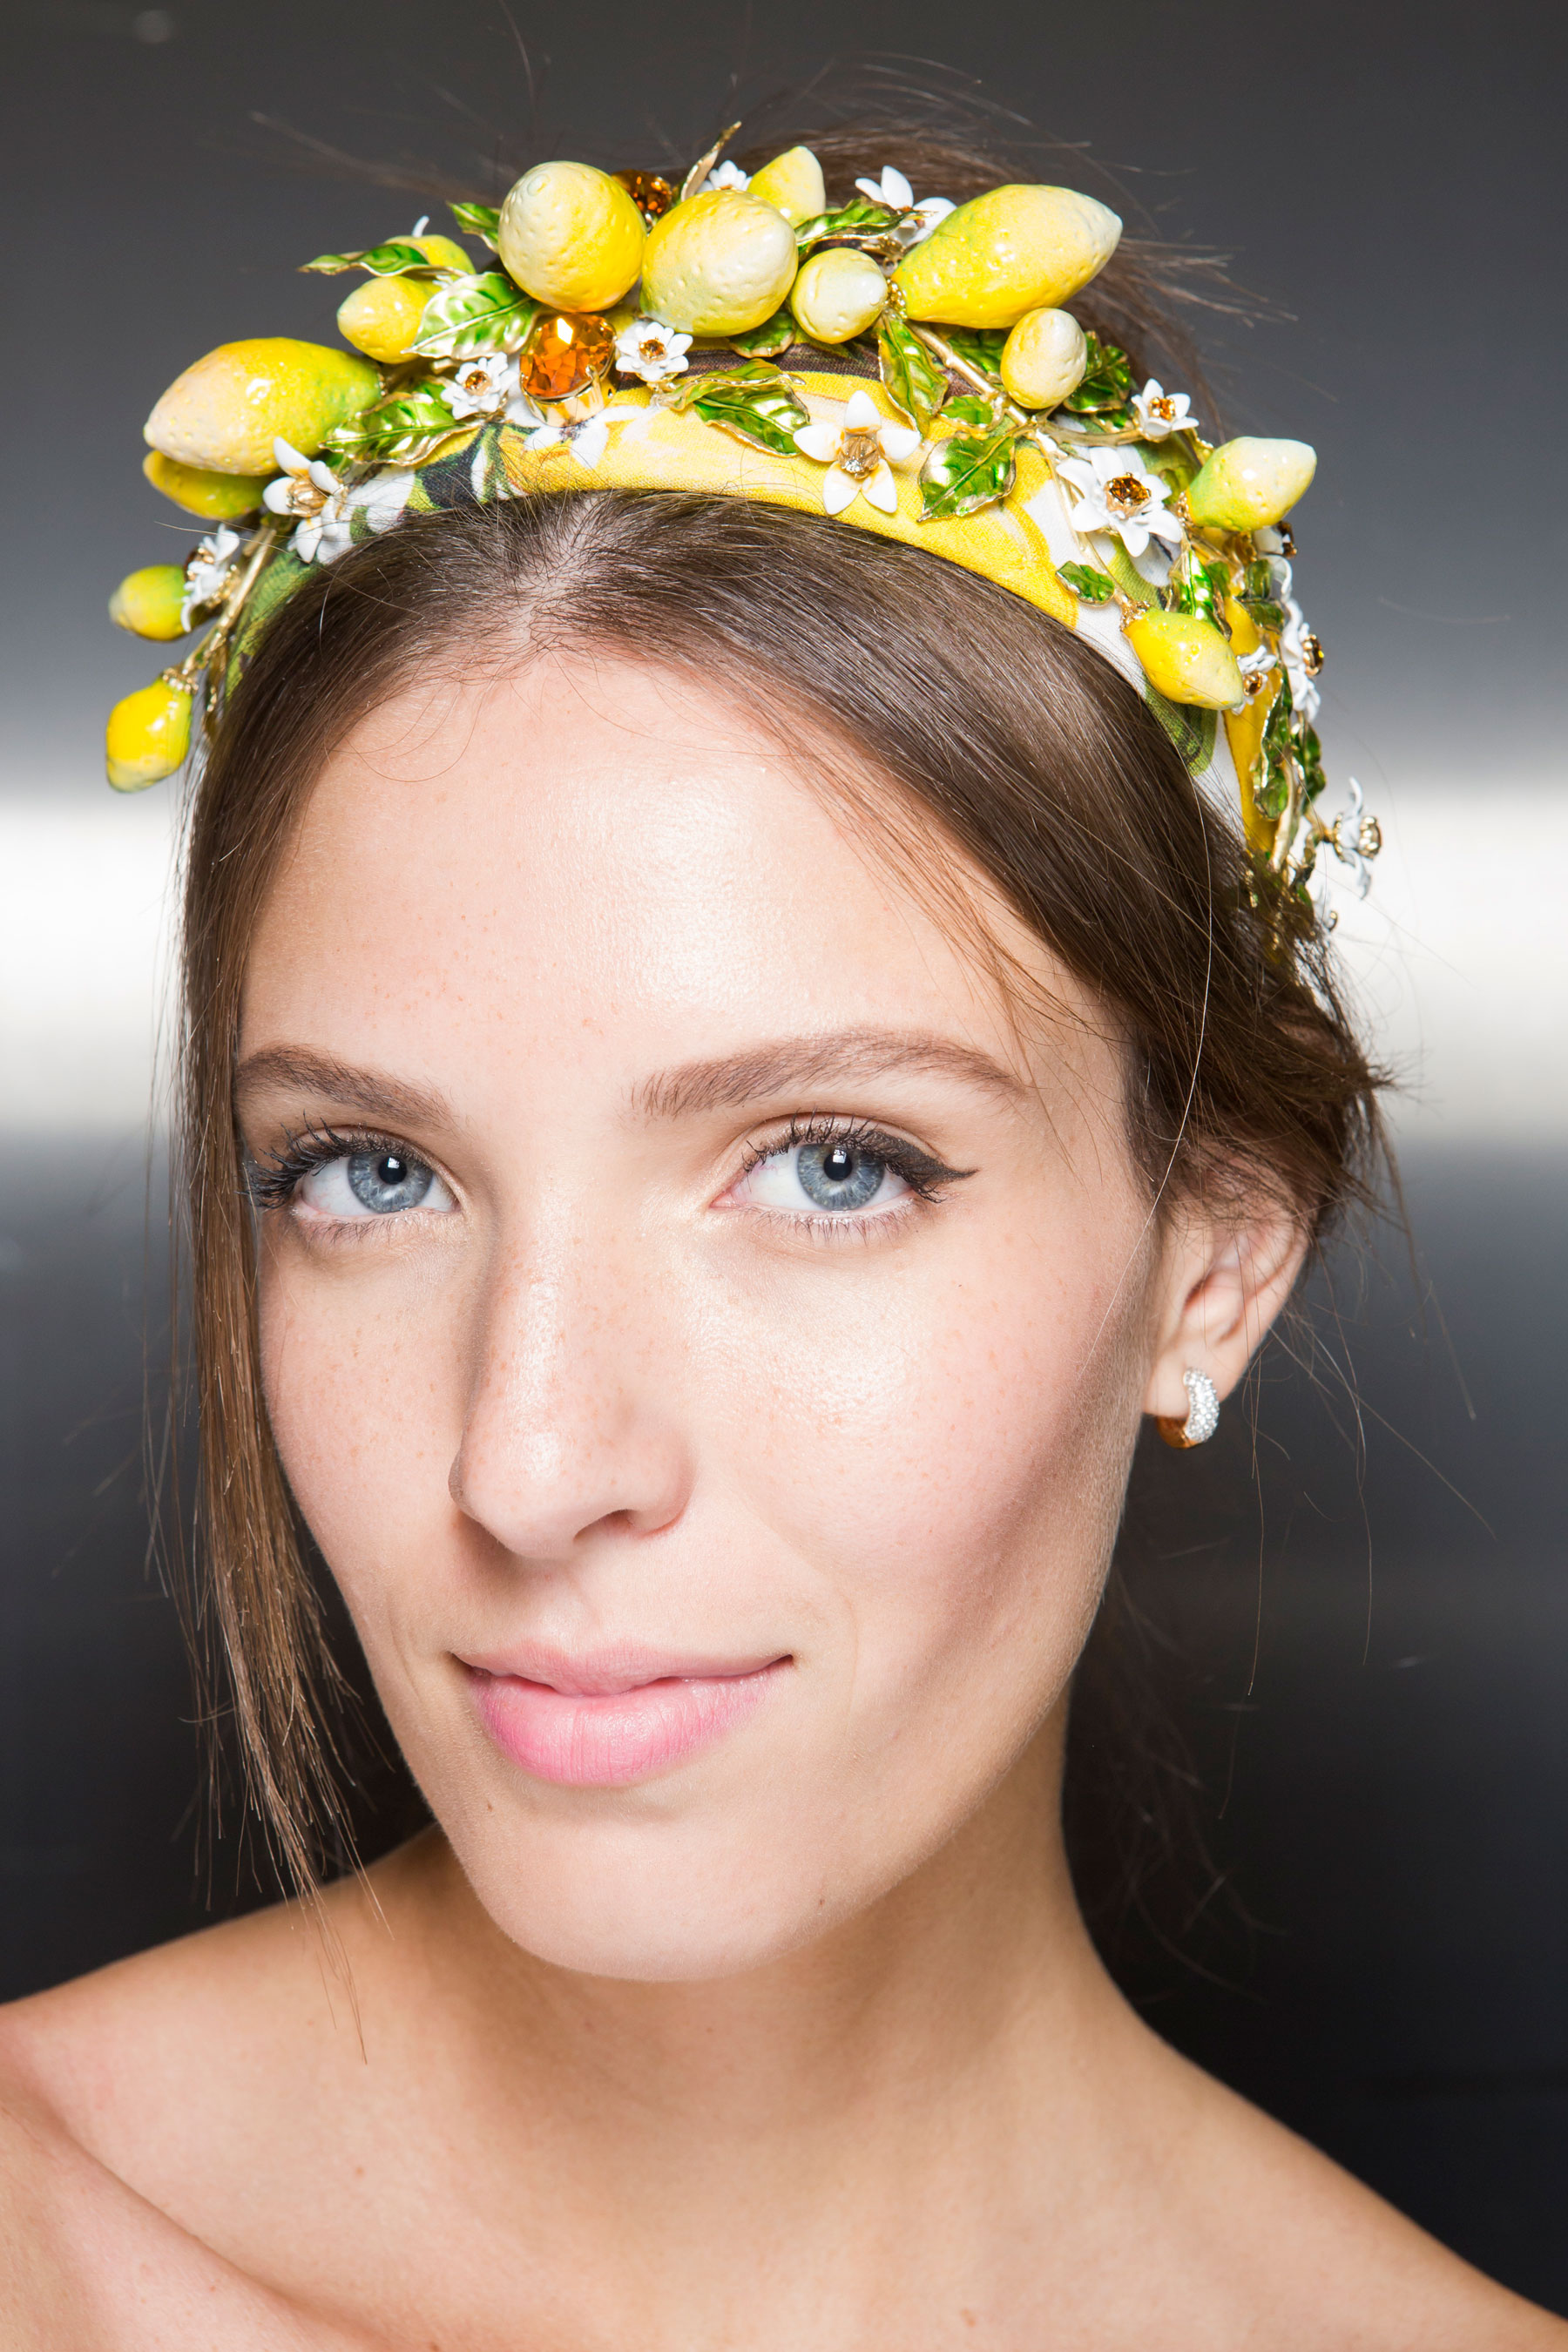 Dolce-and-Gabanna-backstage-beauty-spring-2016-fashion-show-the-impression-066